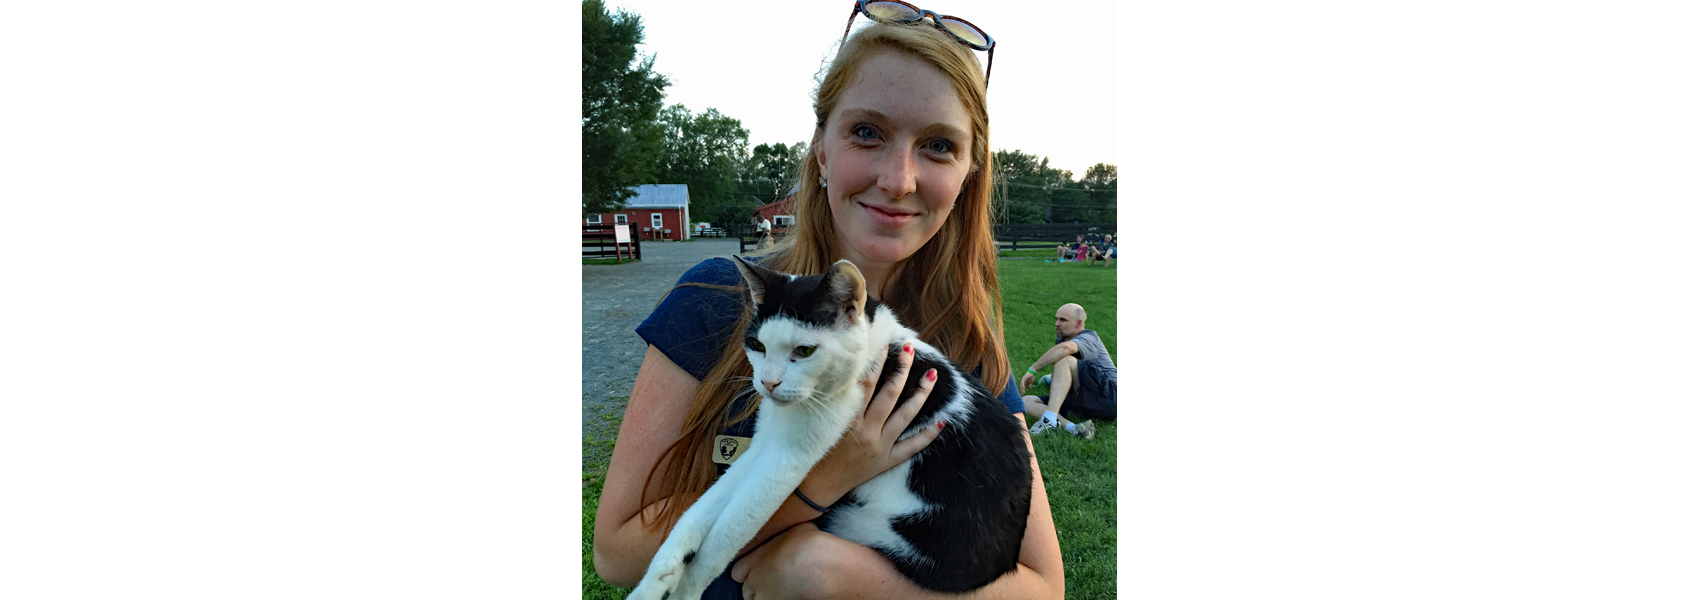 Volunteer at Frying Pan Farm Park holds a cat